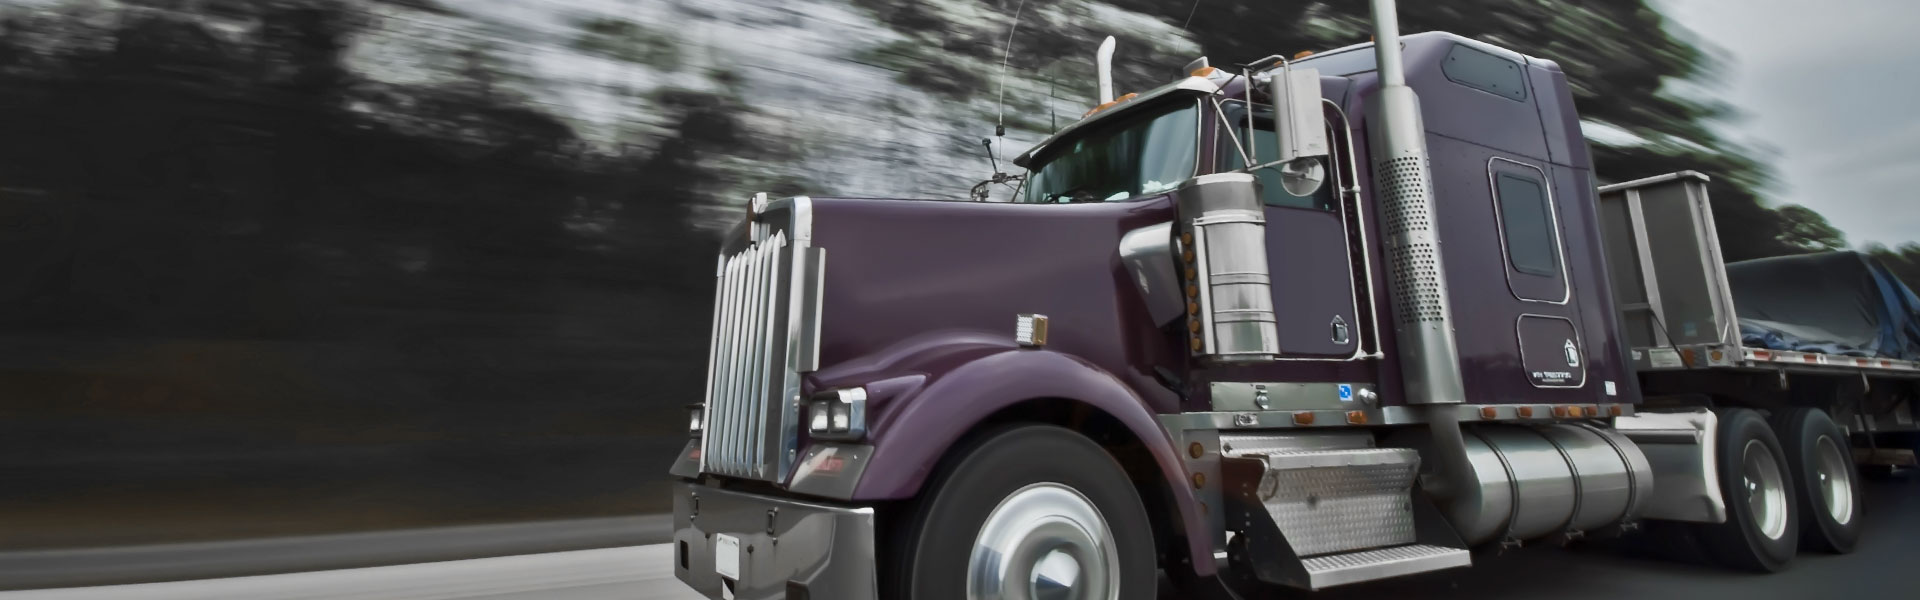 Truck Freight Services